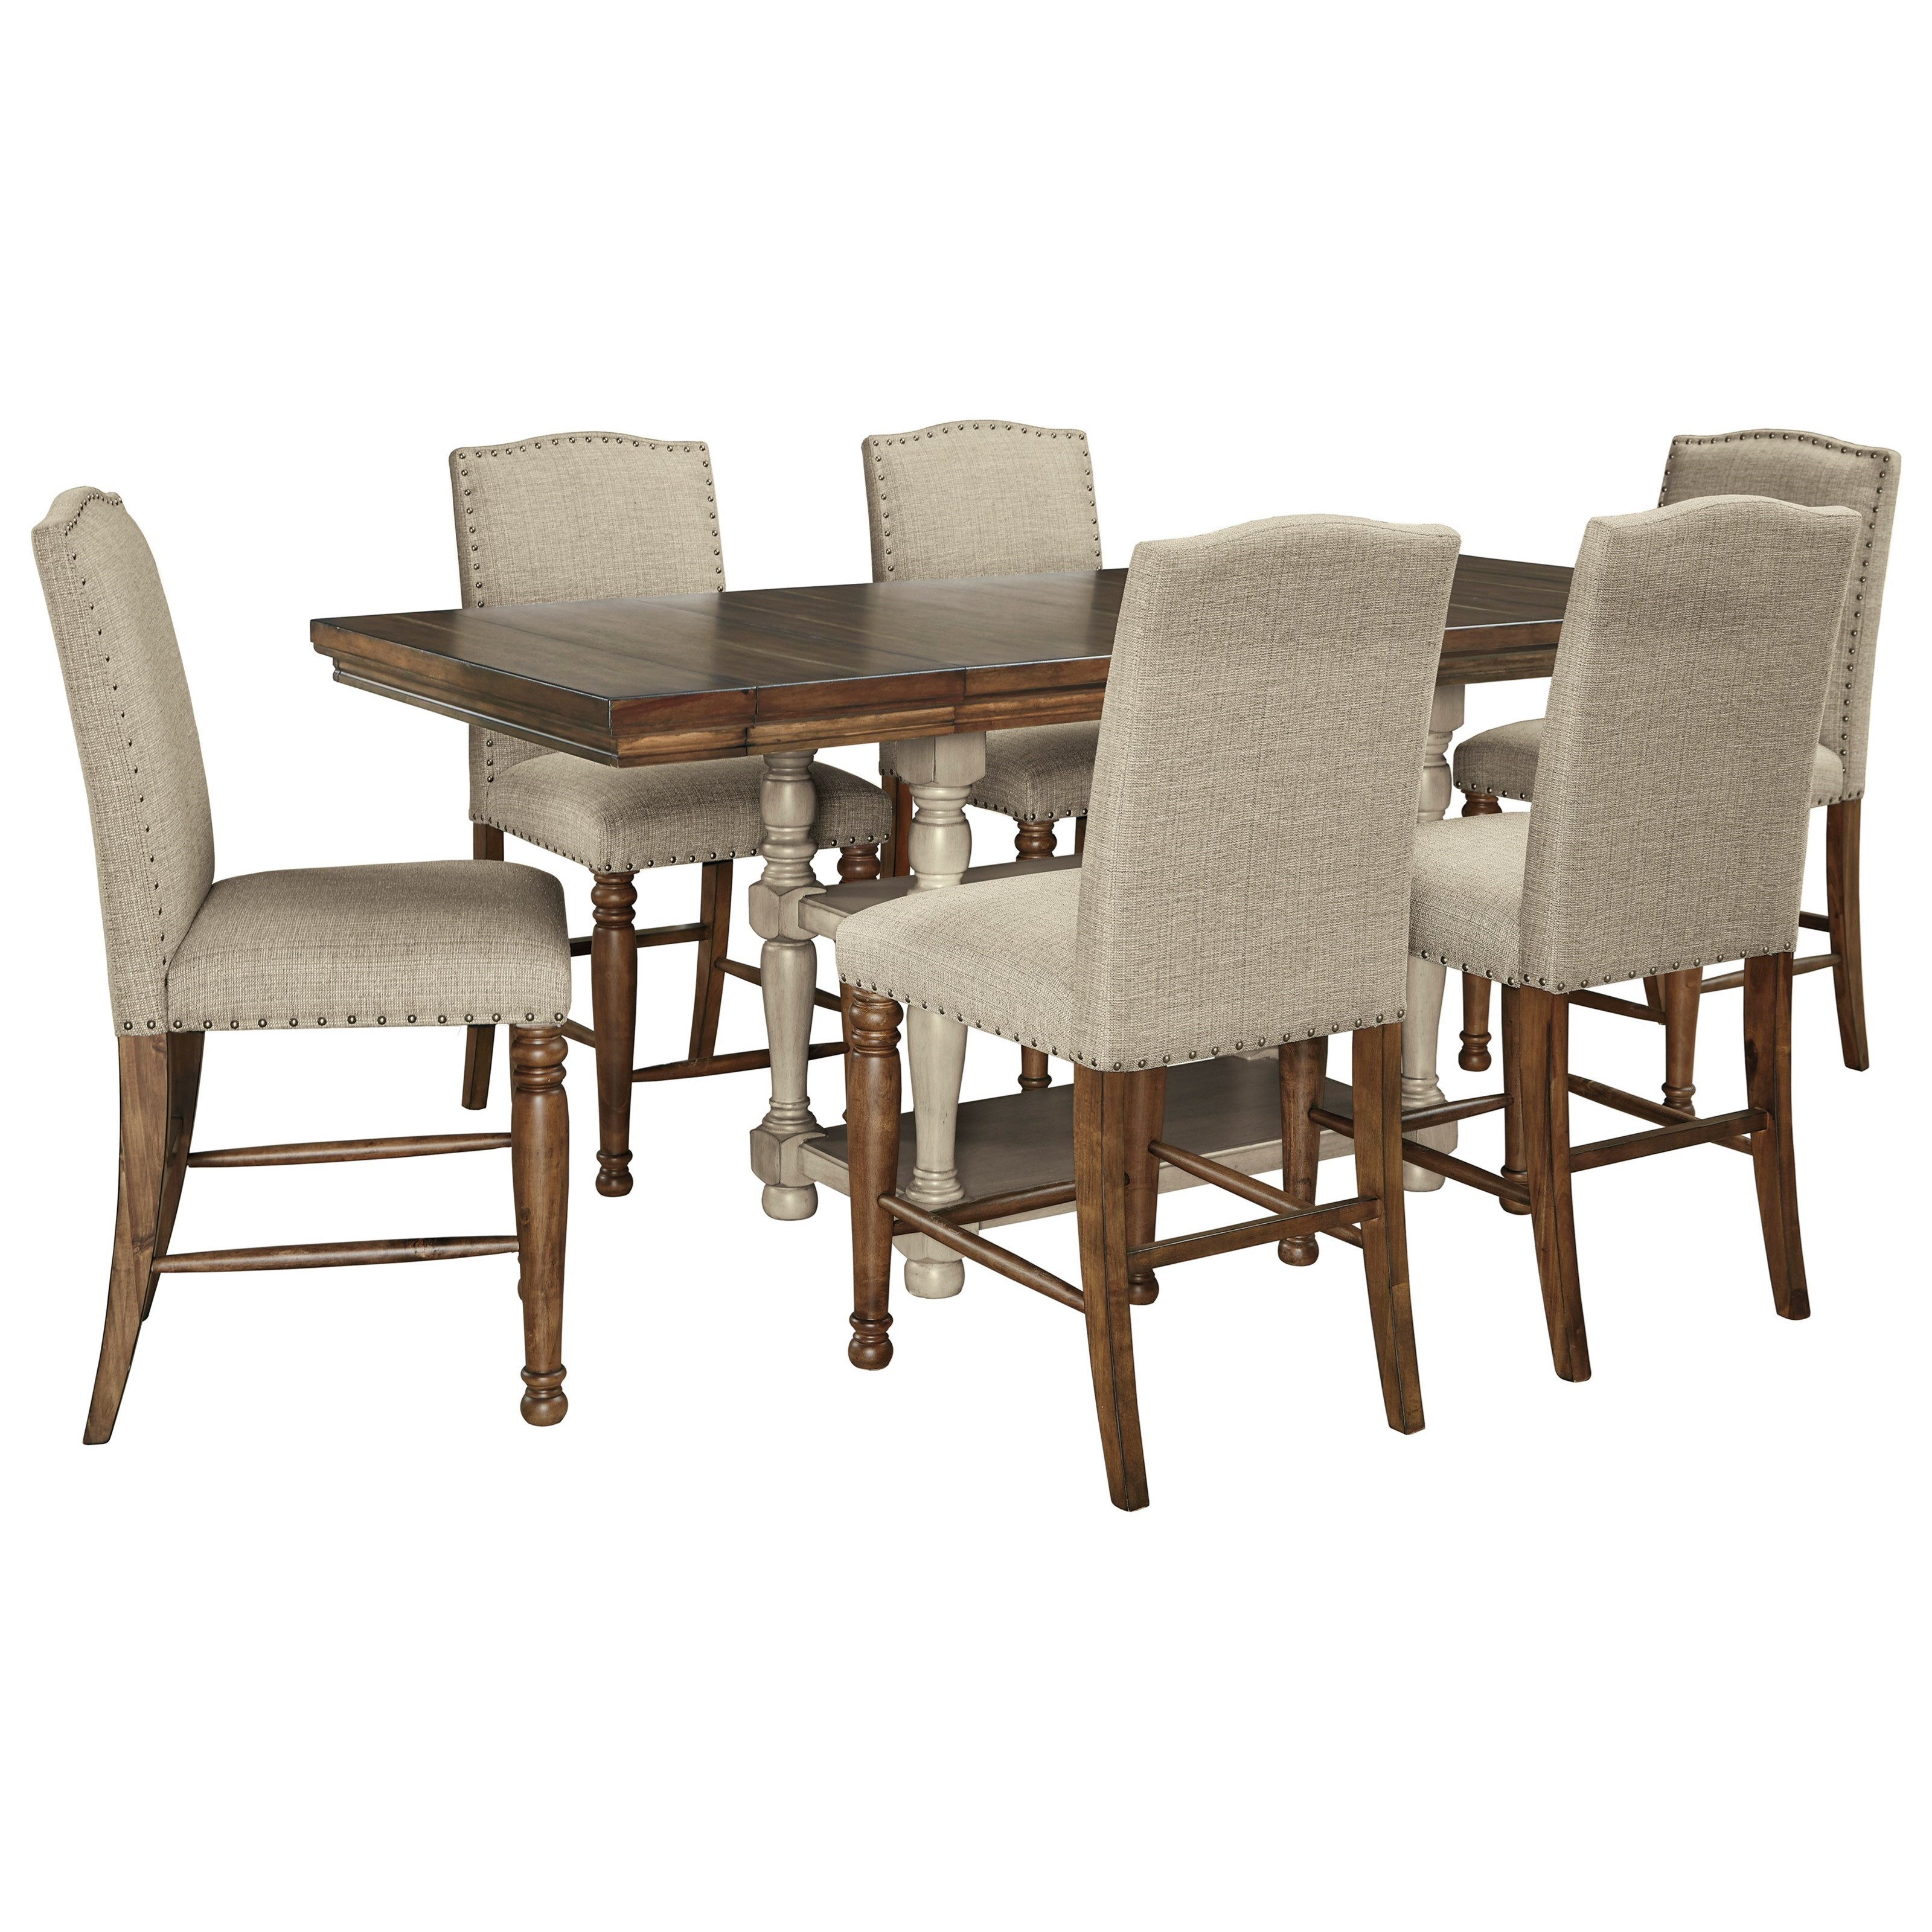 Lettner 7-Piece Counter Table Set by Signature Design by Ashley at Beck's Furniture